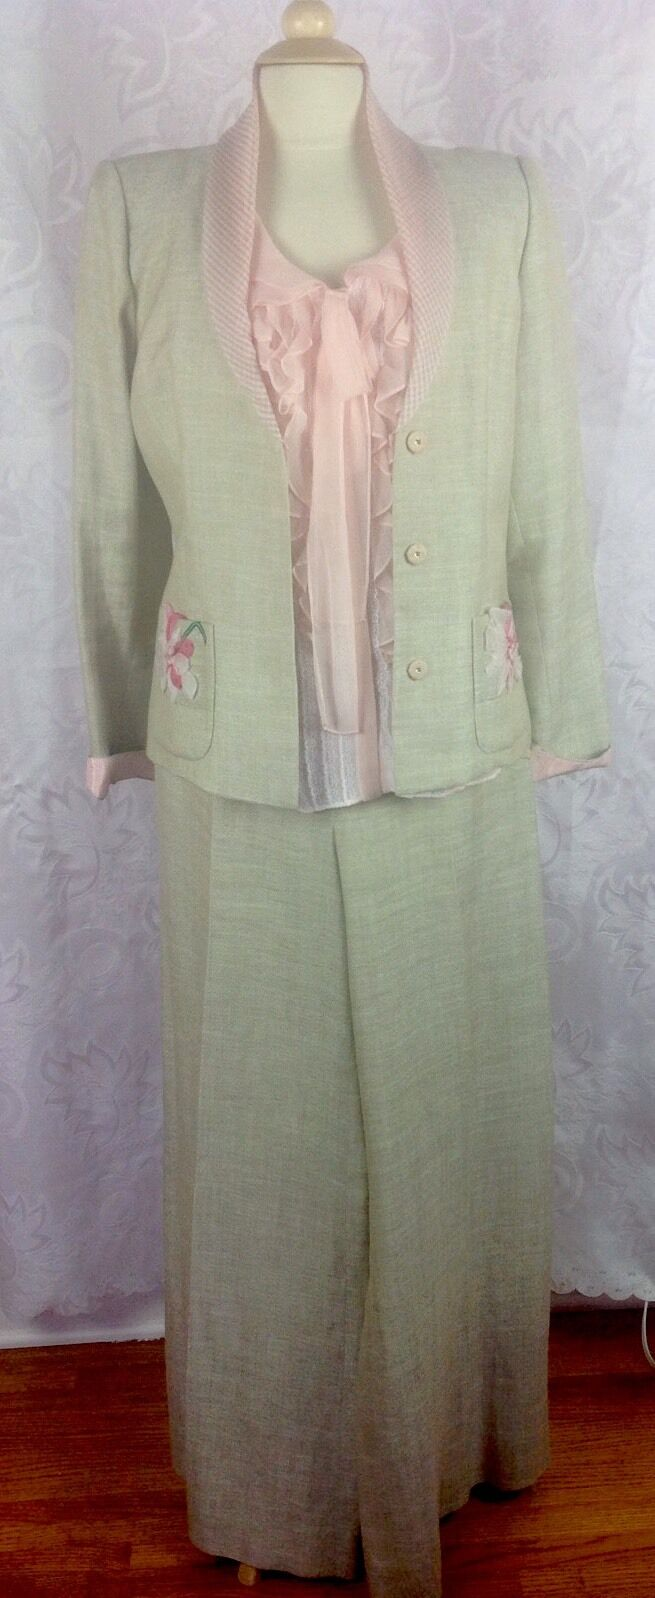 OSCAR de LA RENTA SZ.8, ROMANTIC THREE PIECE LINEN SUIT